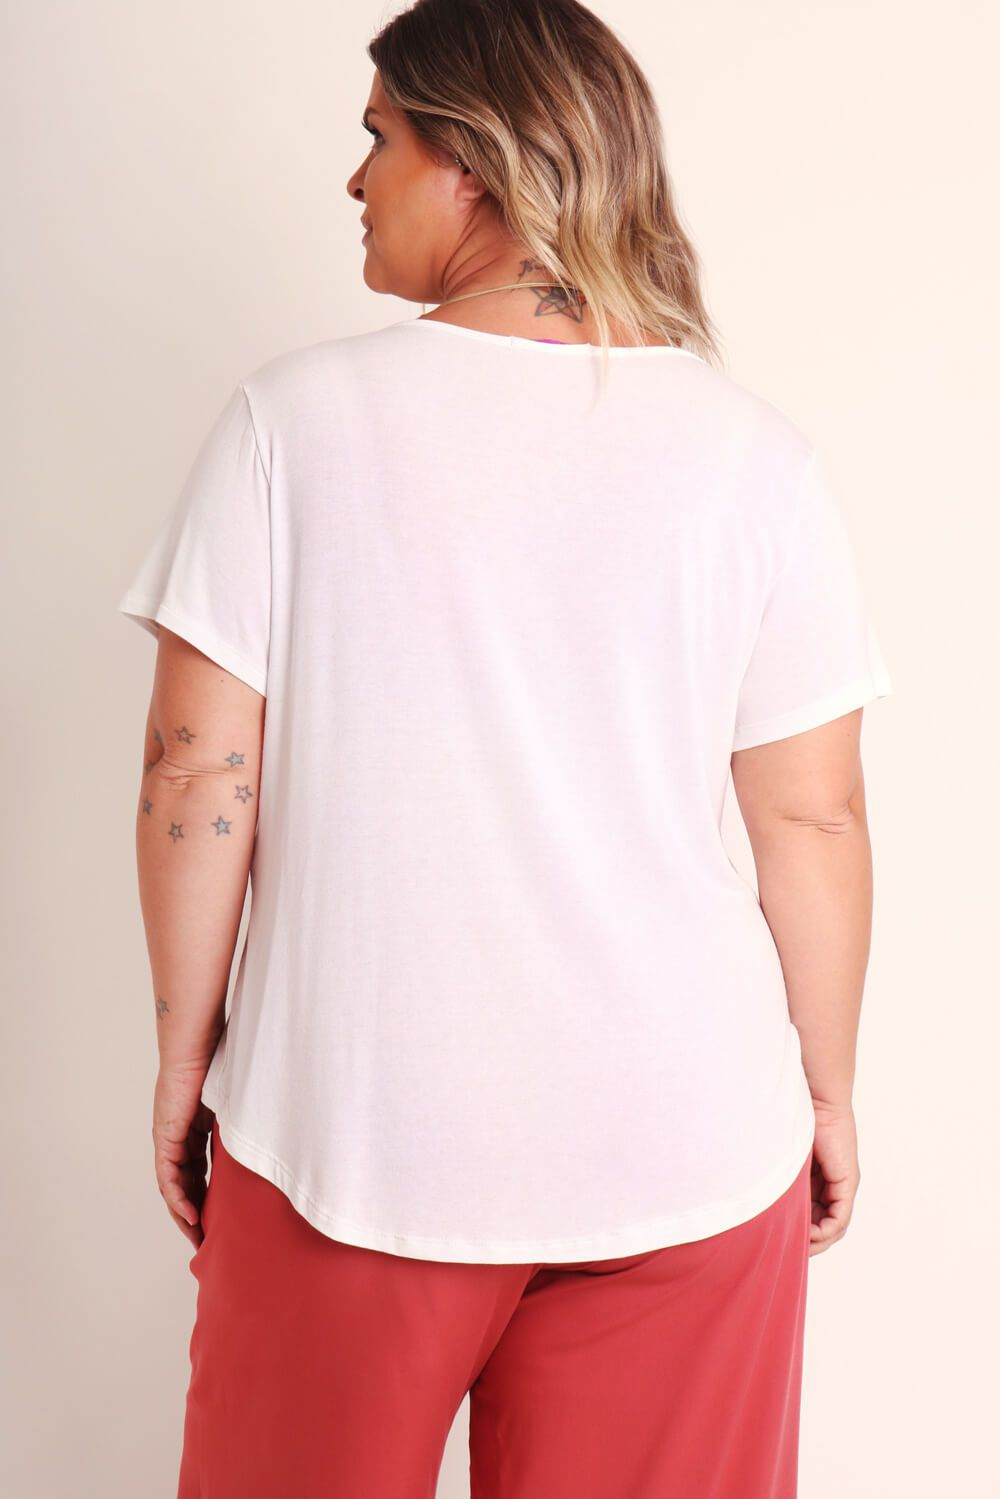 CAMISETA KIT PLUS SIZE BRANCA